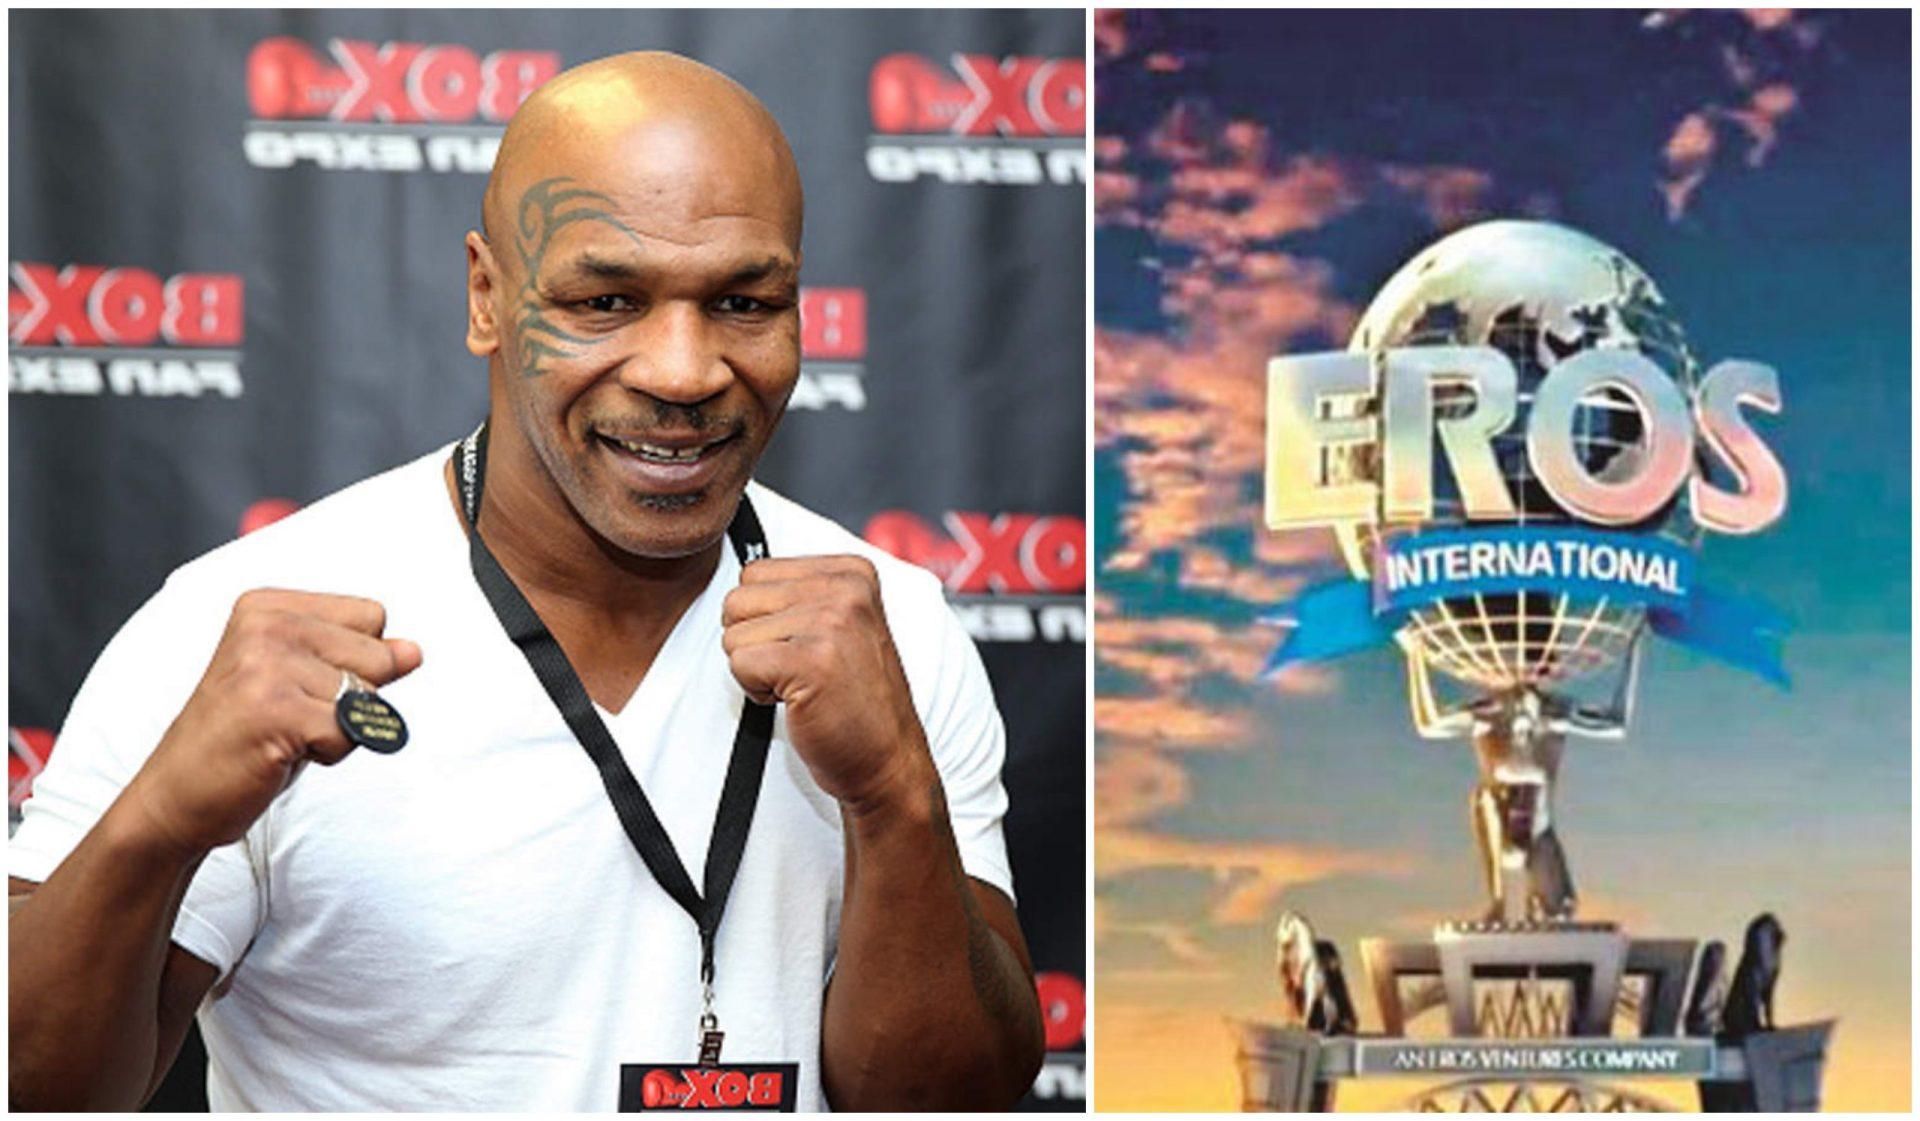 Mike Tyson ties up with Indian investors to create sports league for retired athletes - Mike Tyson